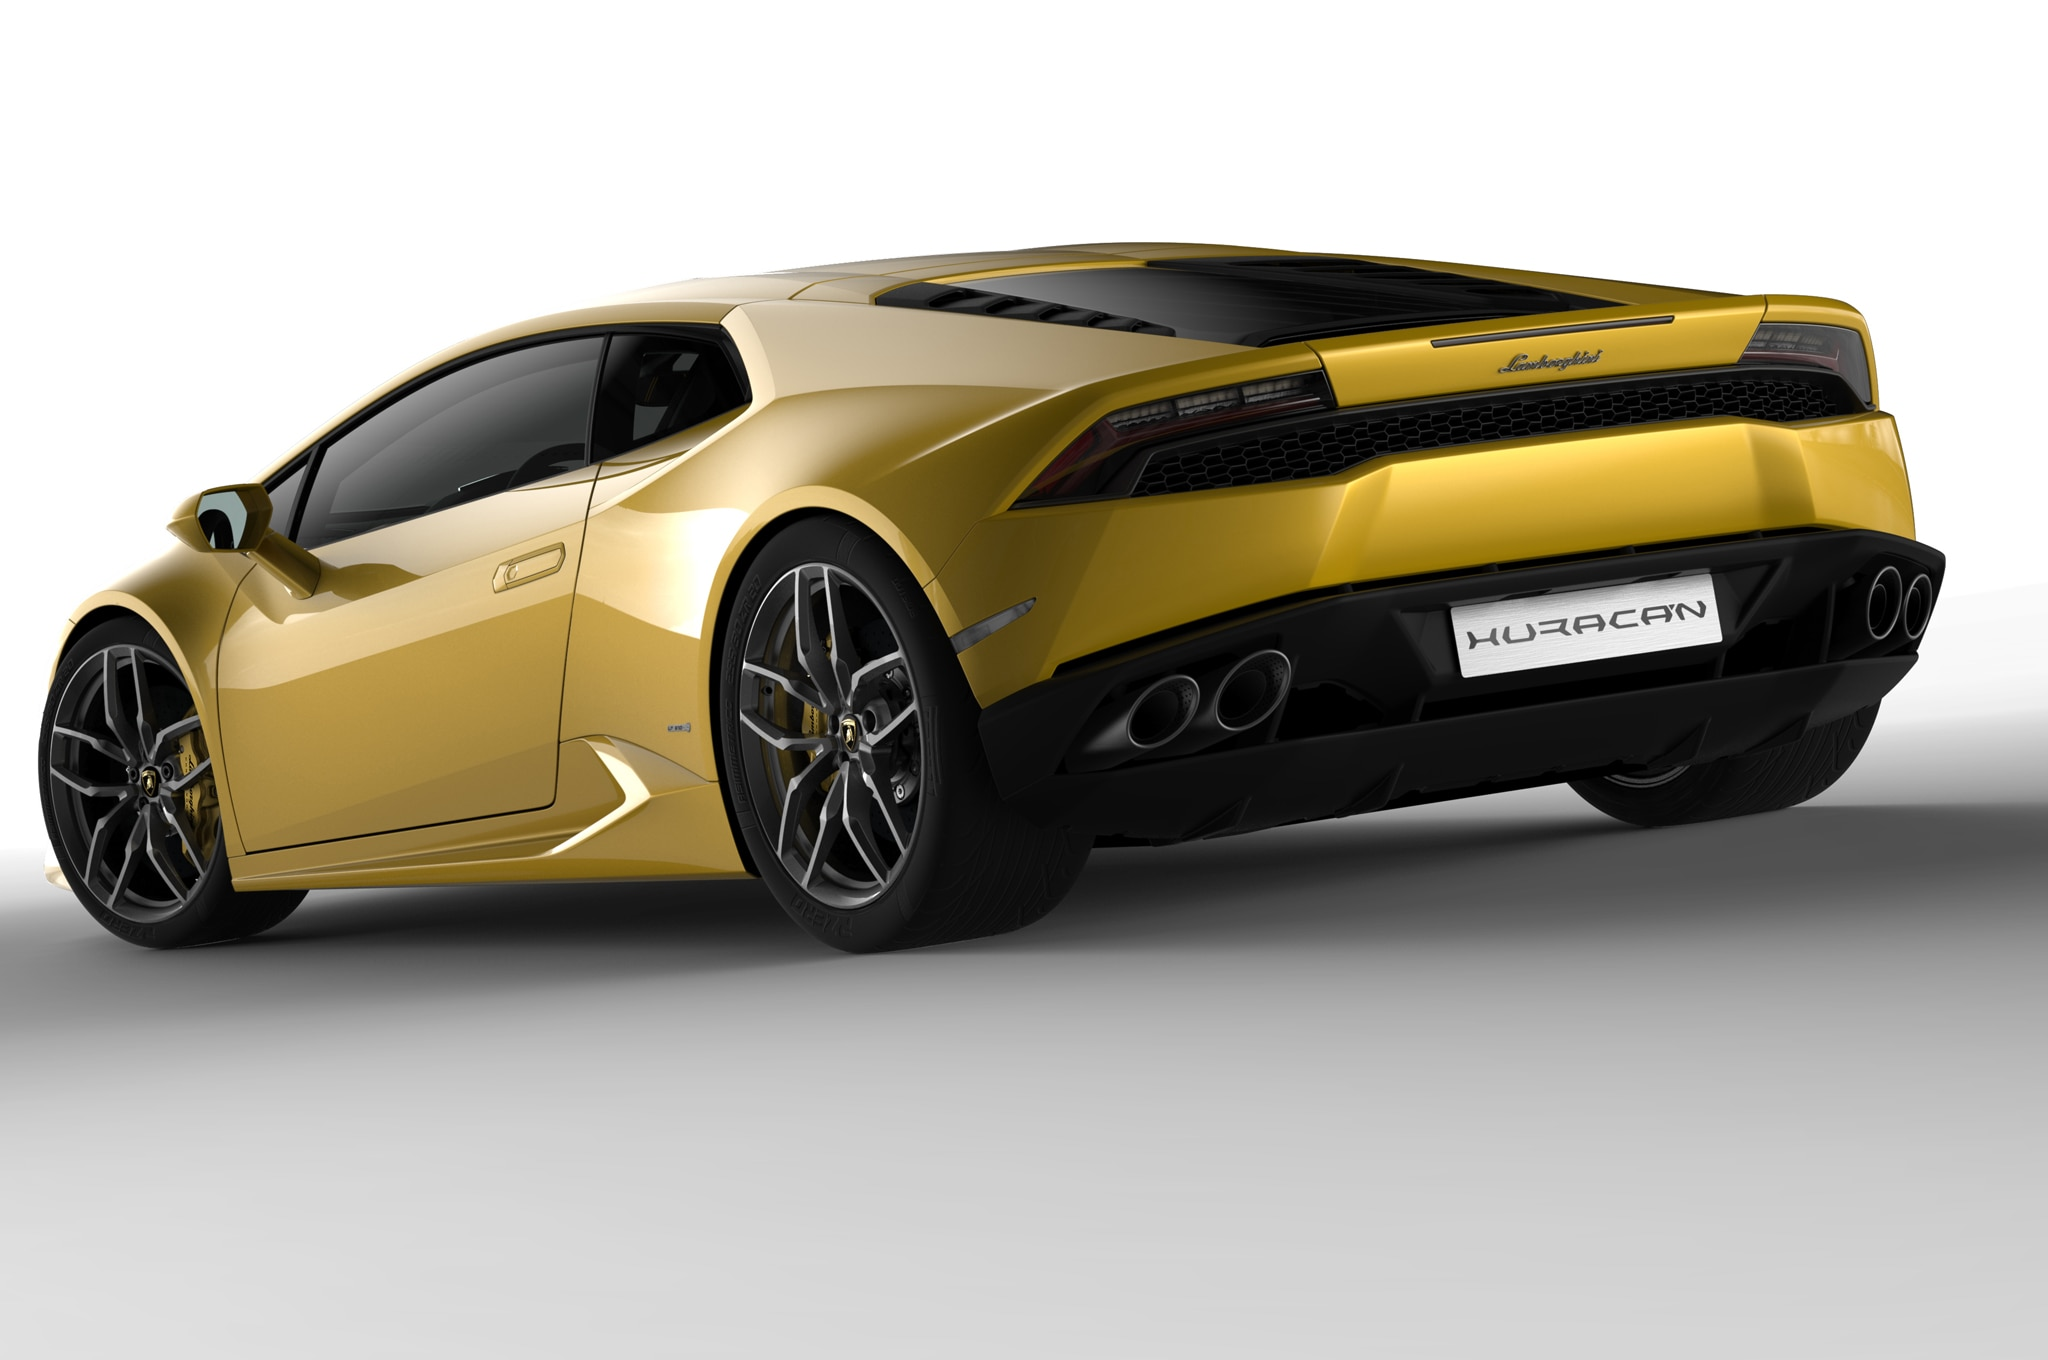 2015 Lamborghini Huracan Yellow Rear Three Quarters